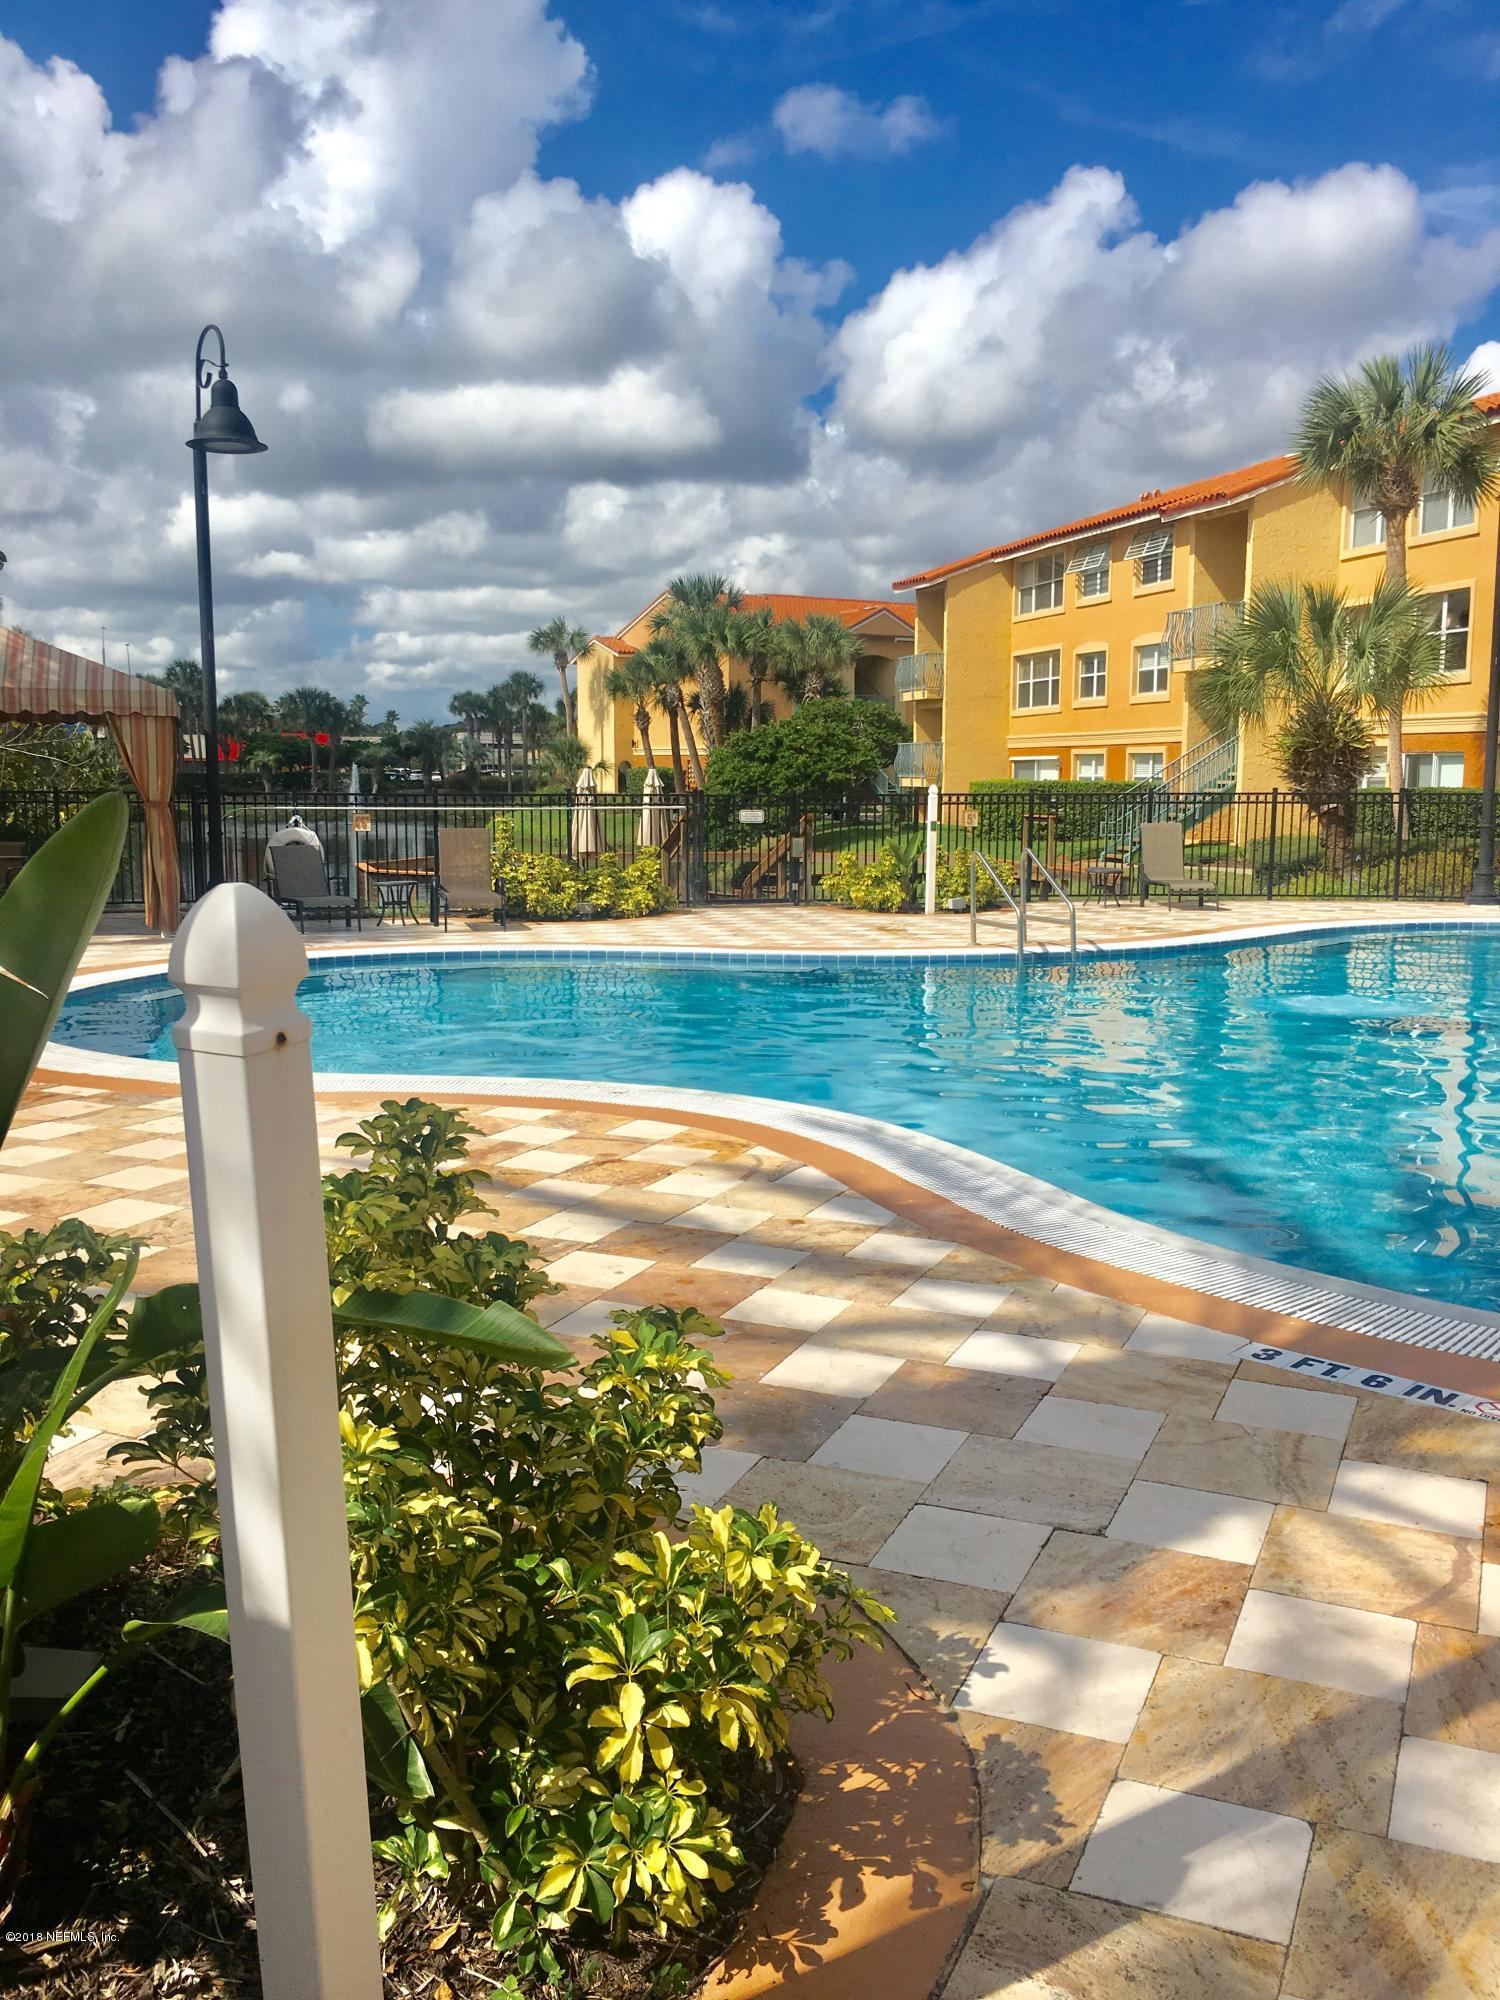 105 25TH, JACKSONVILLE BEACH, FLORIDA 32250, 3 Bedrooms Bedrooms, ,2 BathroomsBathrooms,Residential - condos/townhomes,For sale,25TH,963658